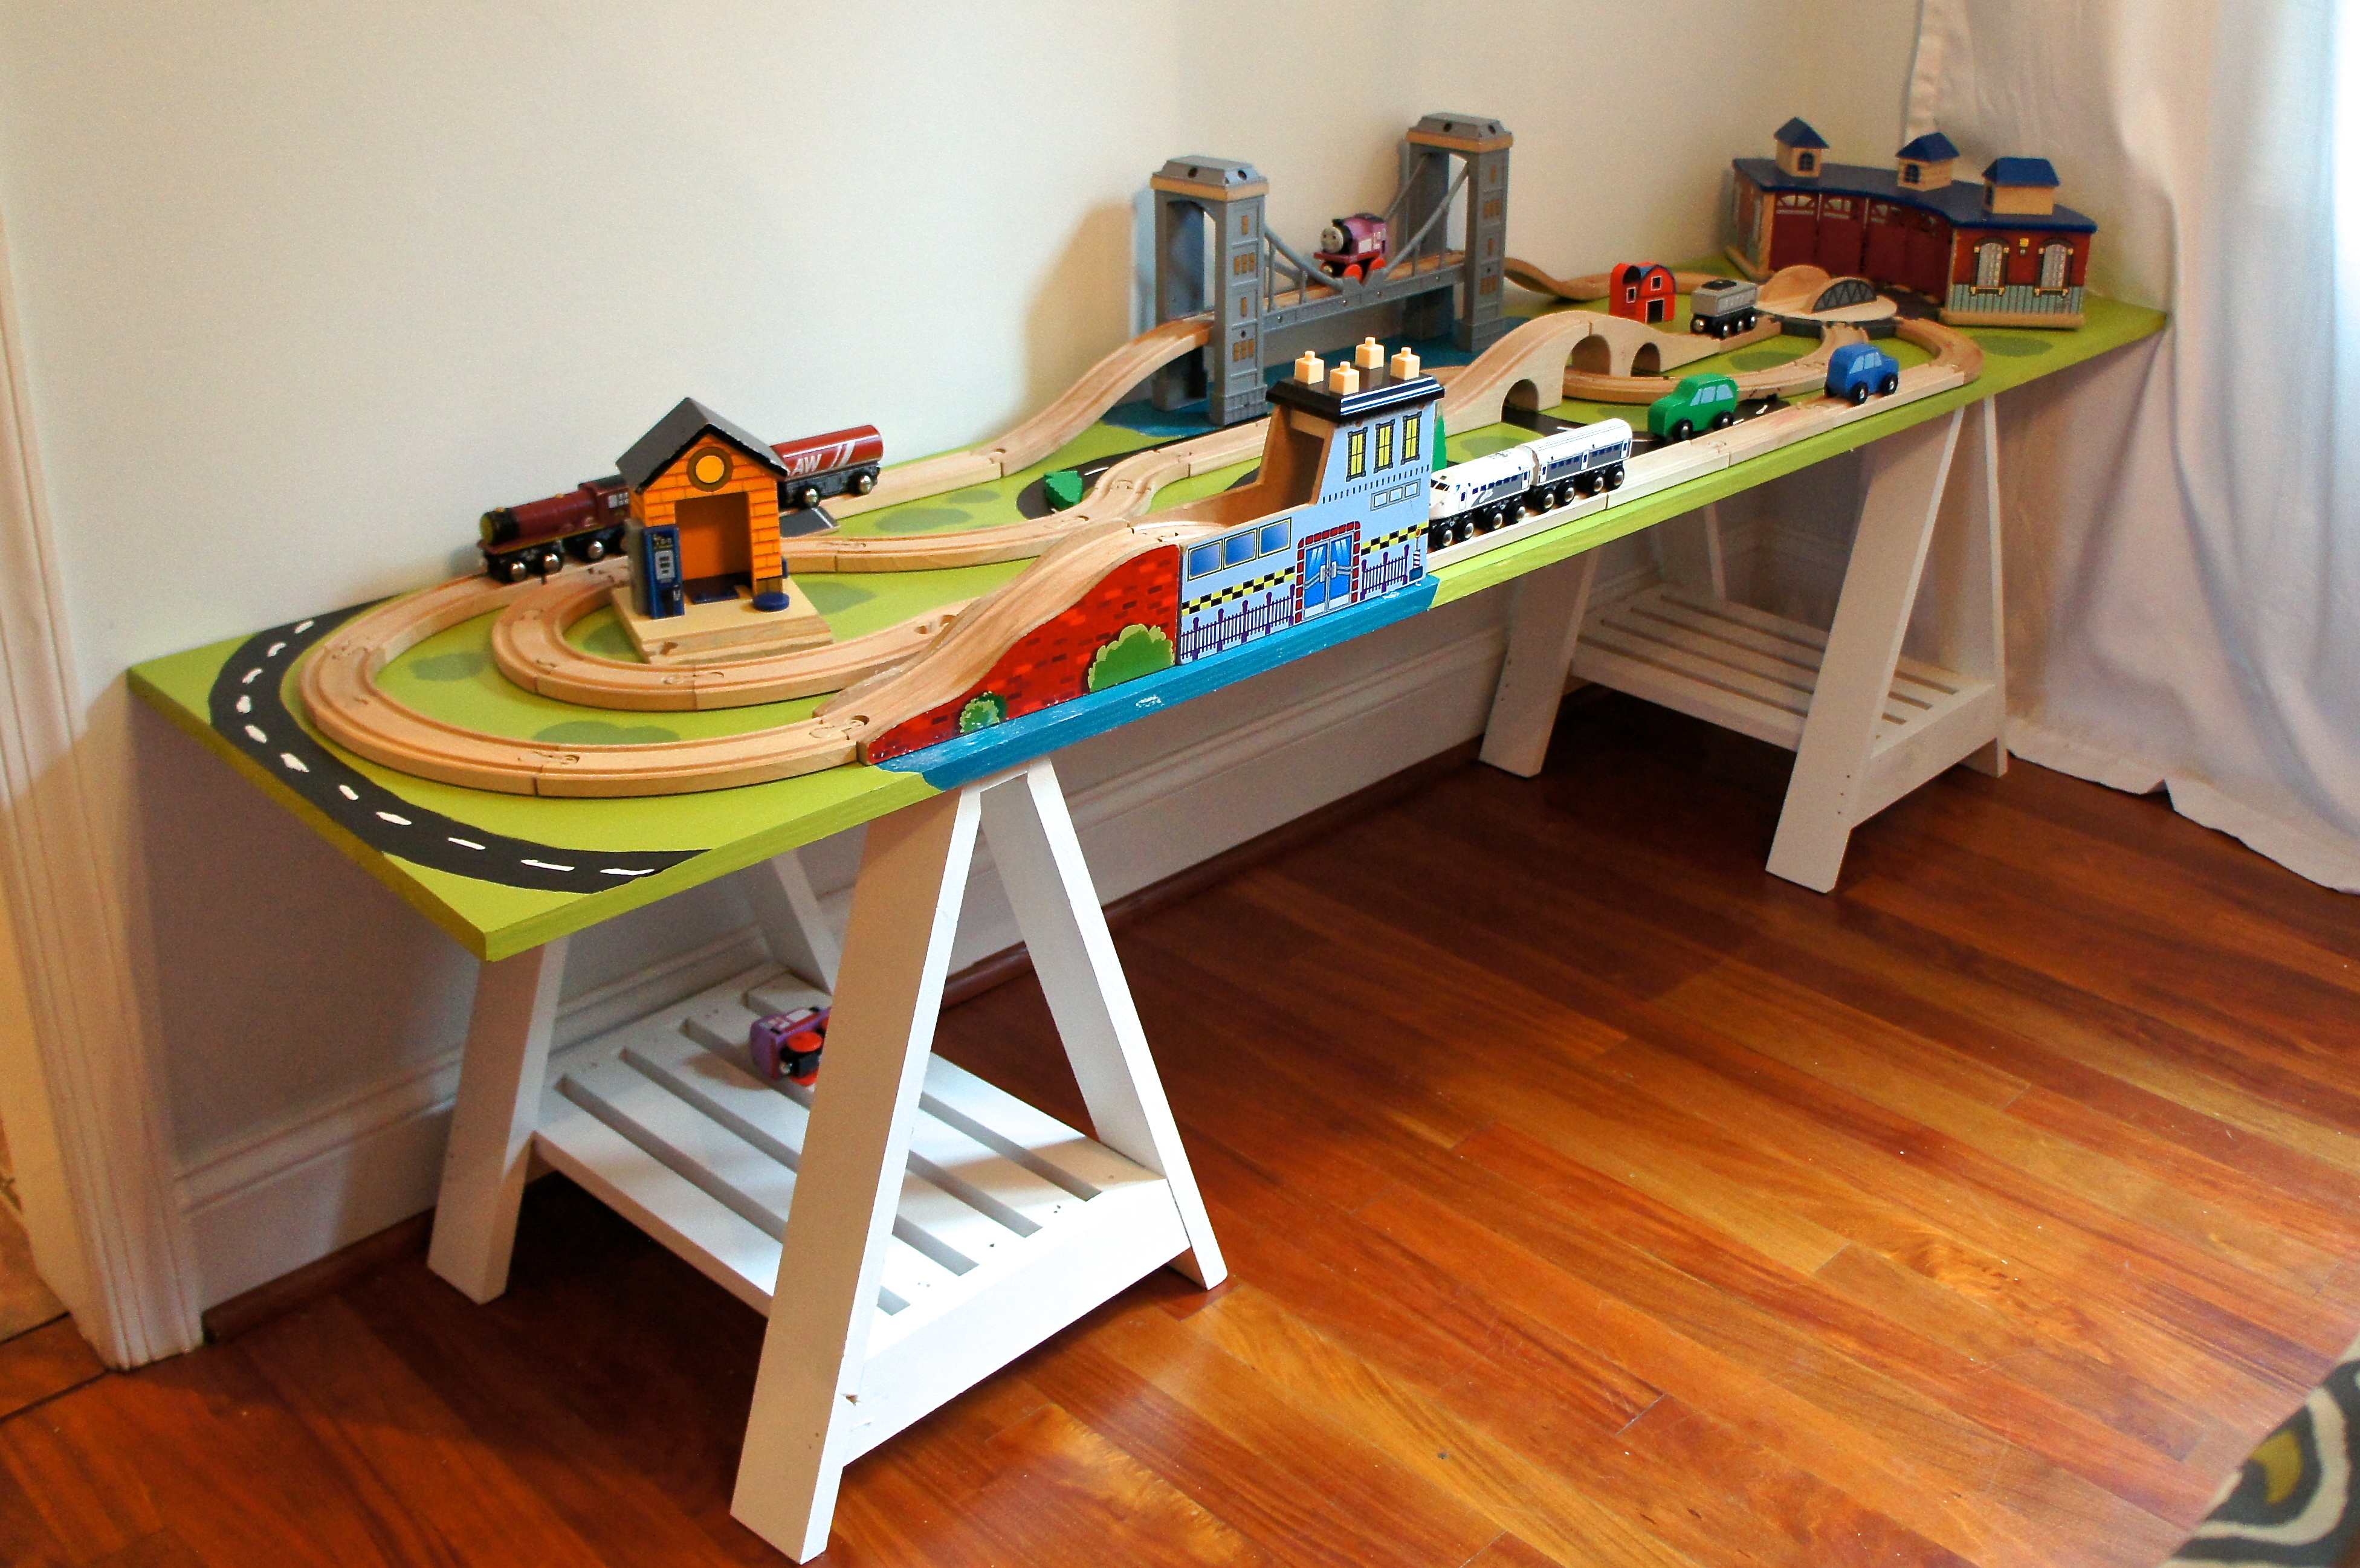 Ikea Childrens Table And Chairs Diy Train Table | Ocean Front Shack